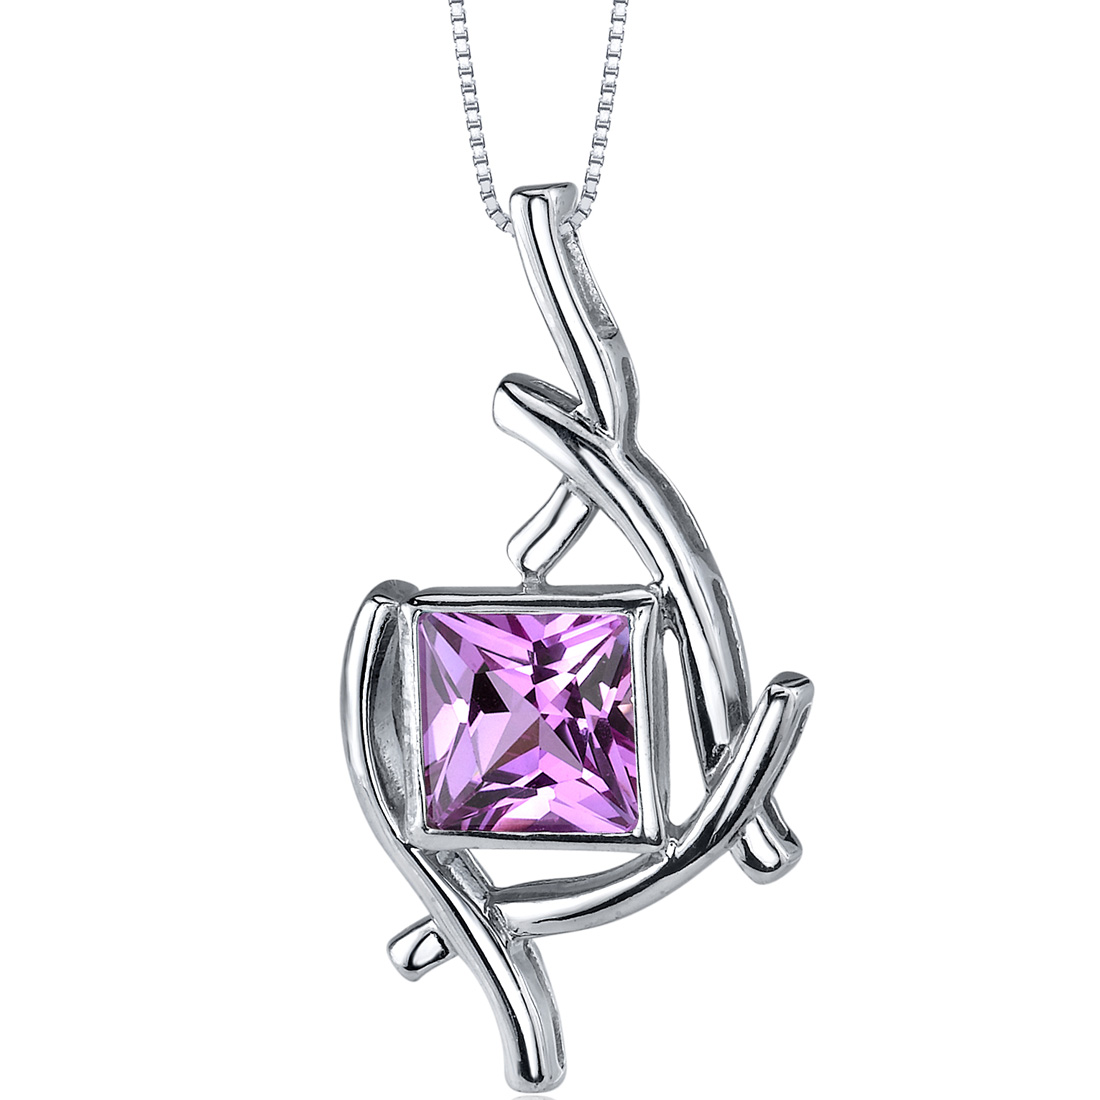 peora Artistic Design 2.25 carats Princess Cut Sterling Silver Pink Sapphire Pendant at Sears.com